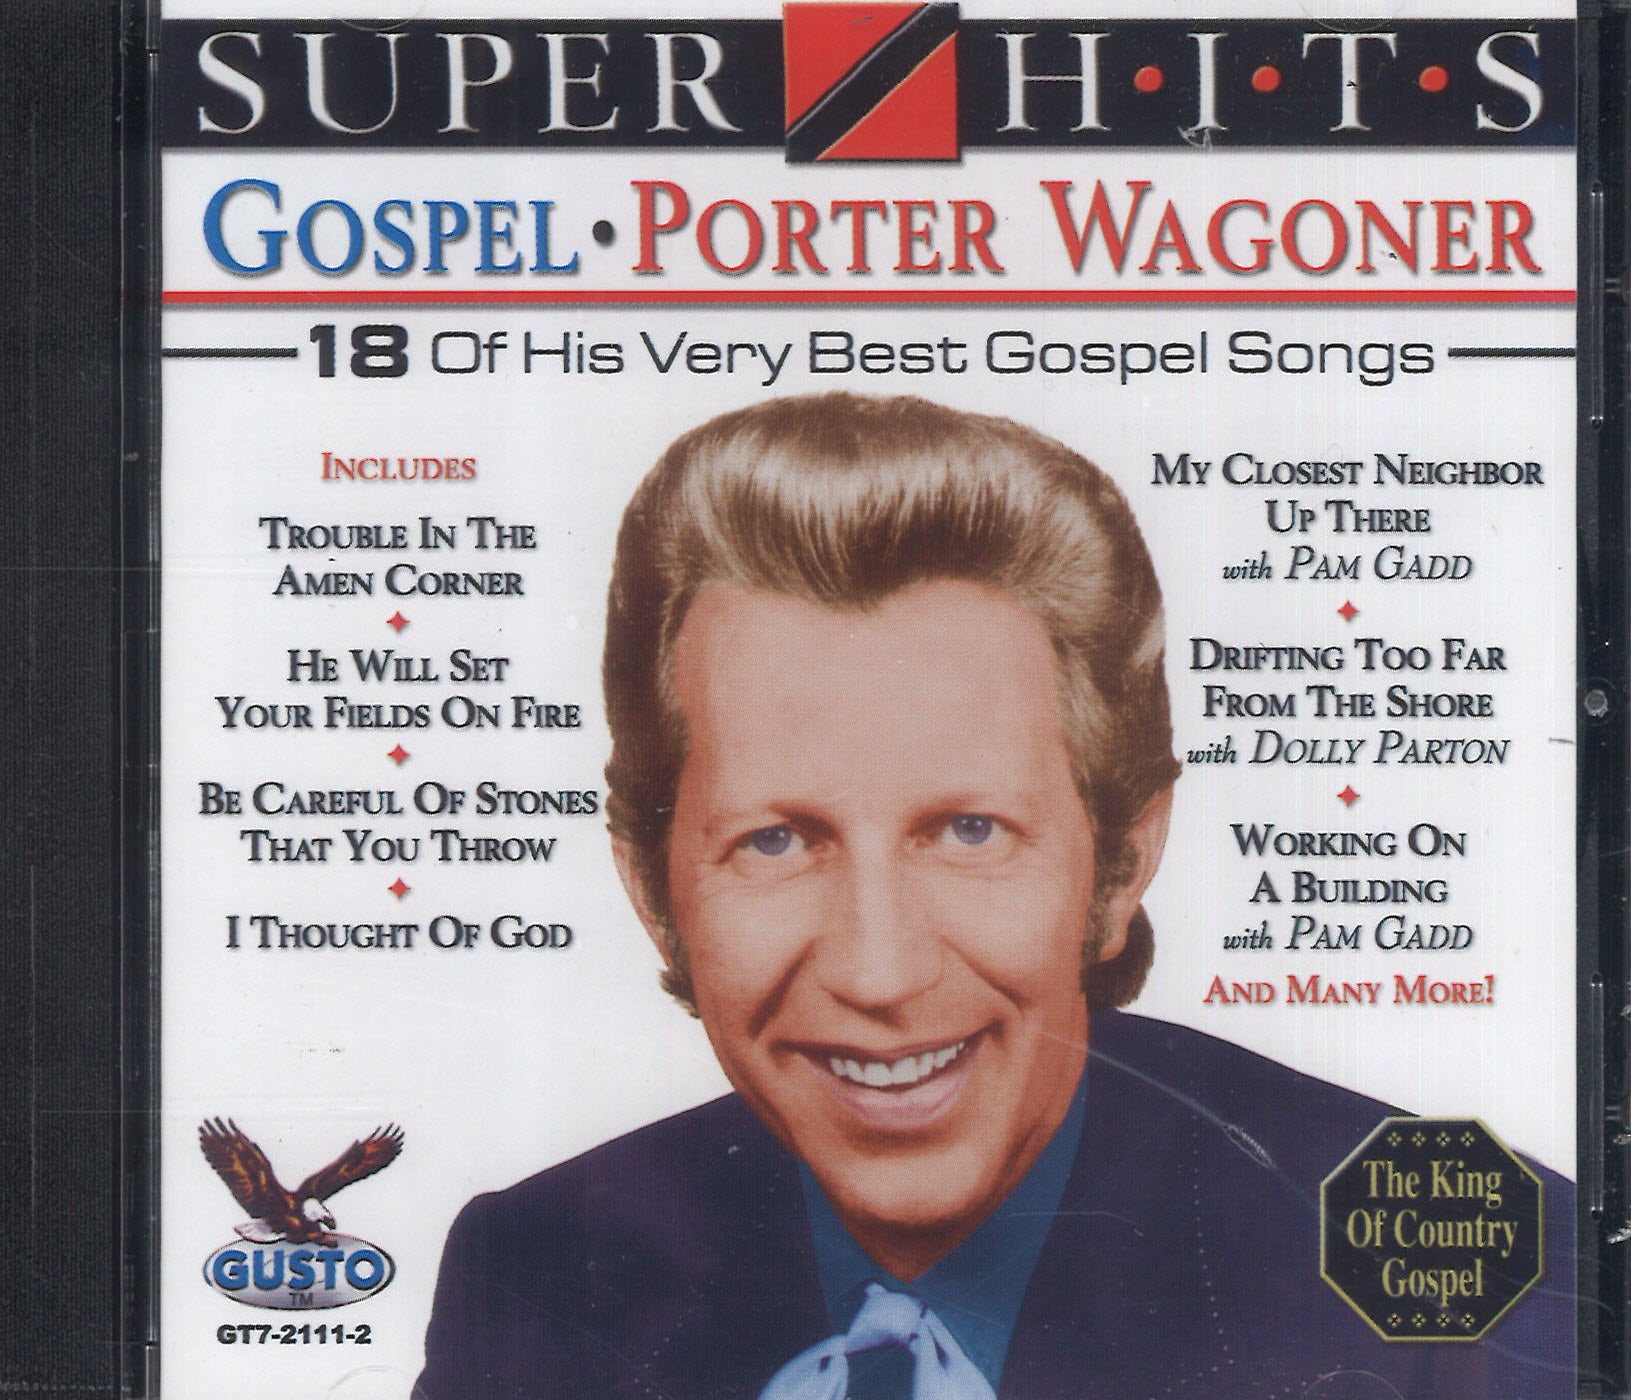 Porter Wagoner Super Hits Gospel